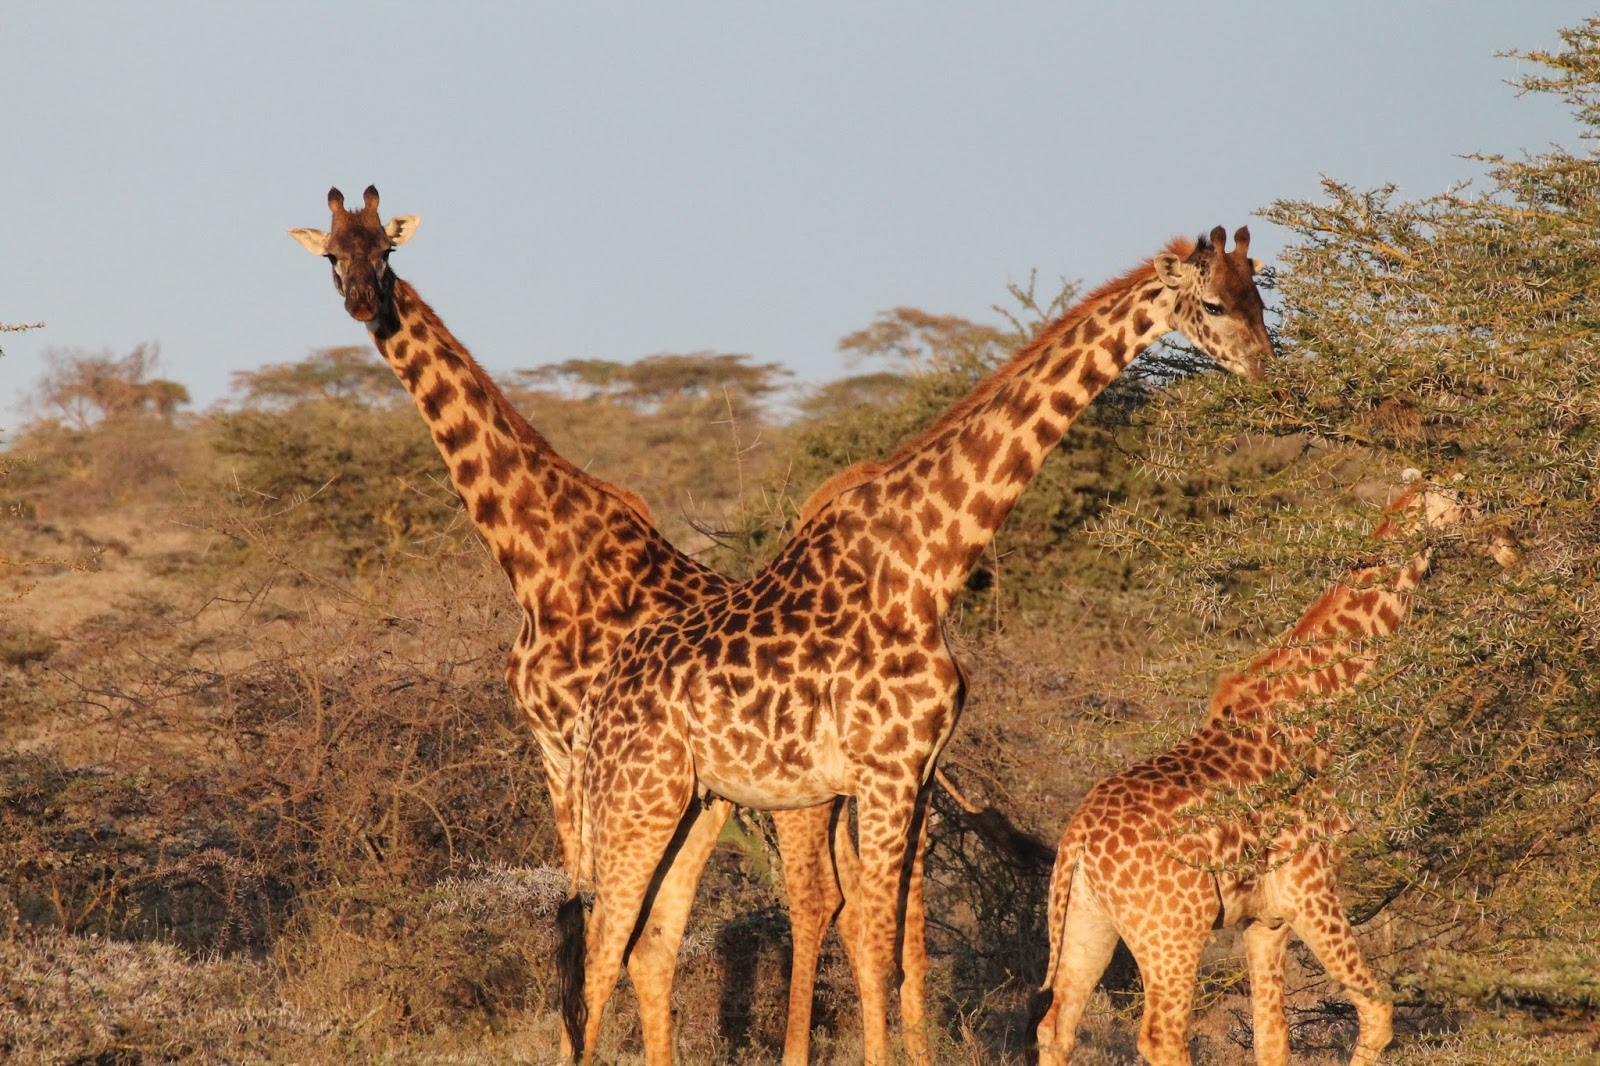 Tall giraffes eating leaves from acacia trees.